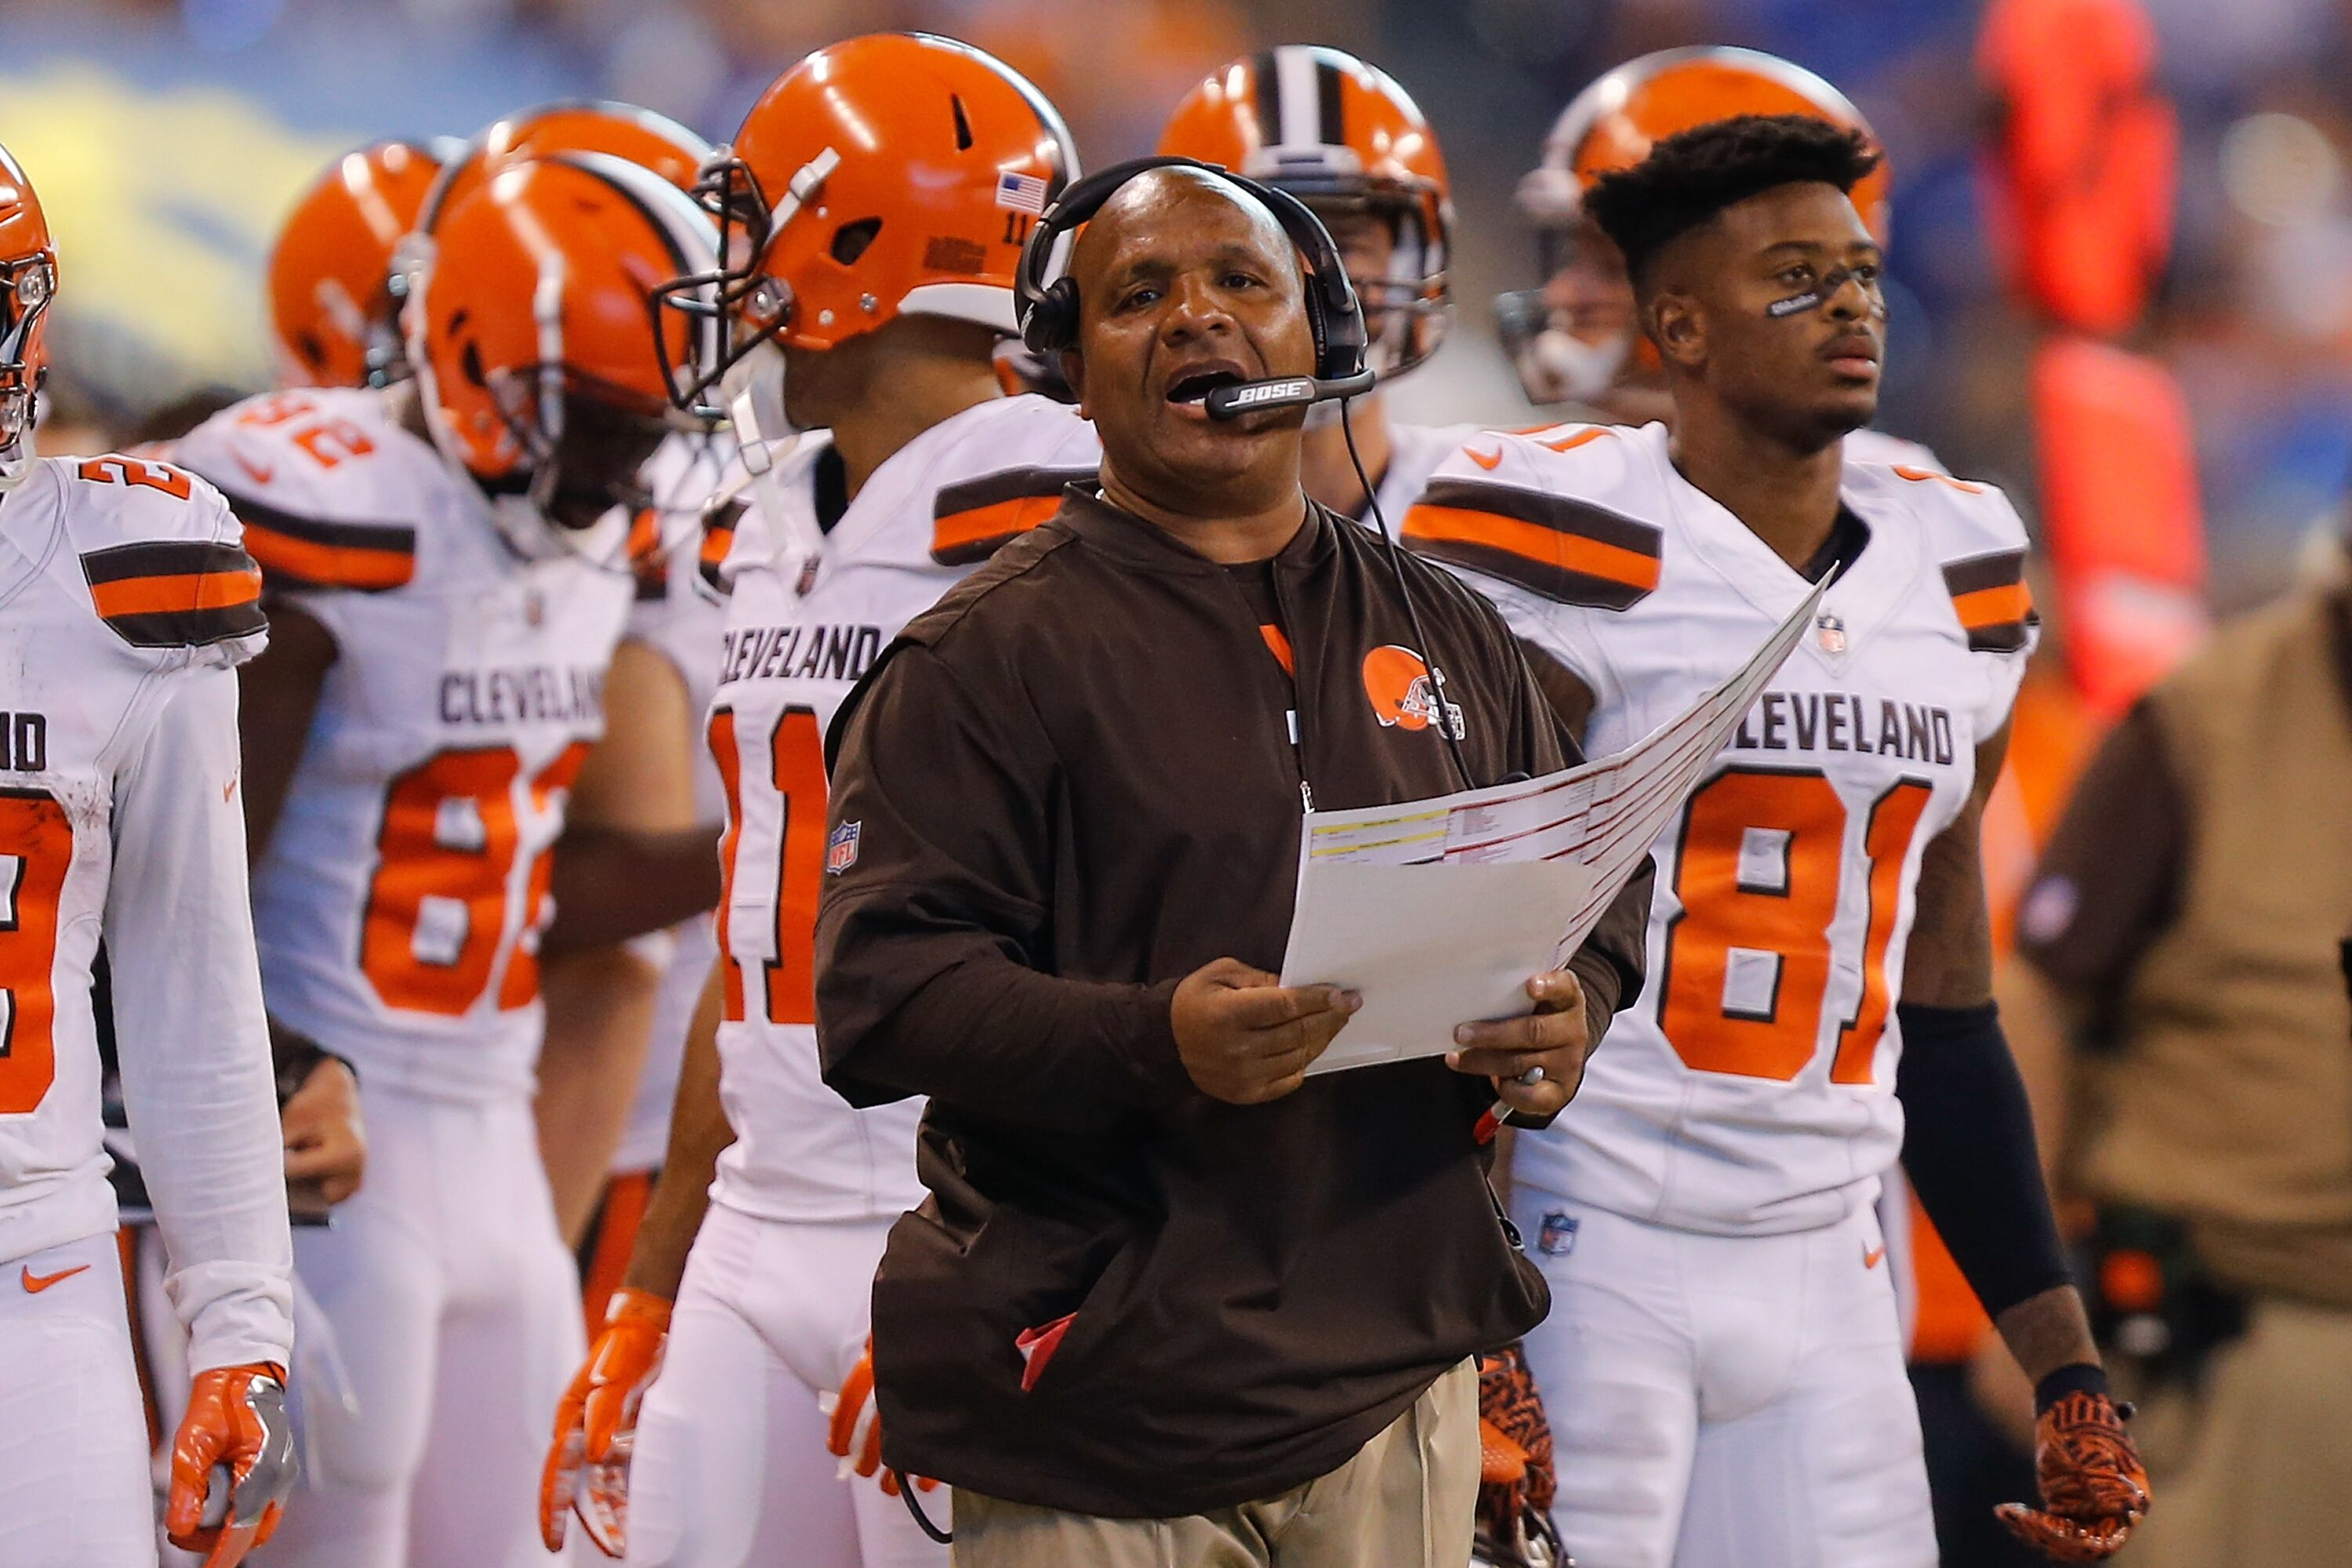 853152308-cleveland-browns-v-indianapolis-colts.jpg